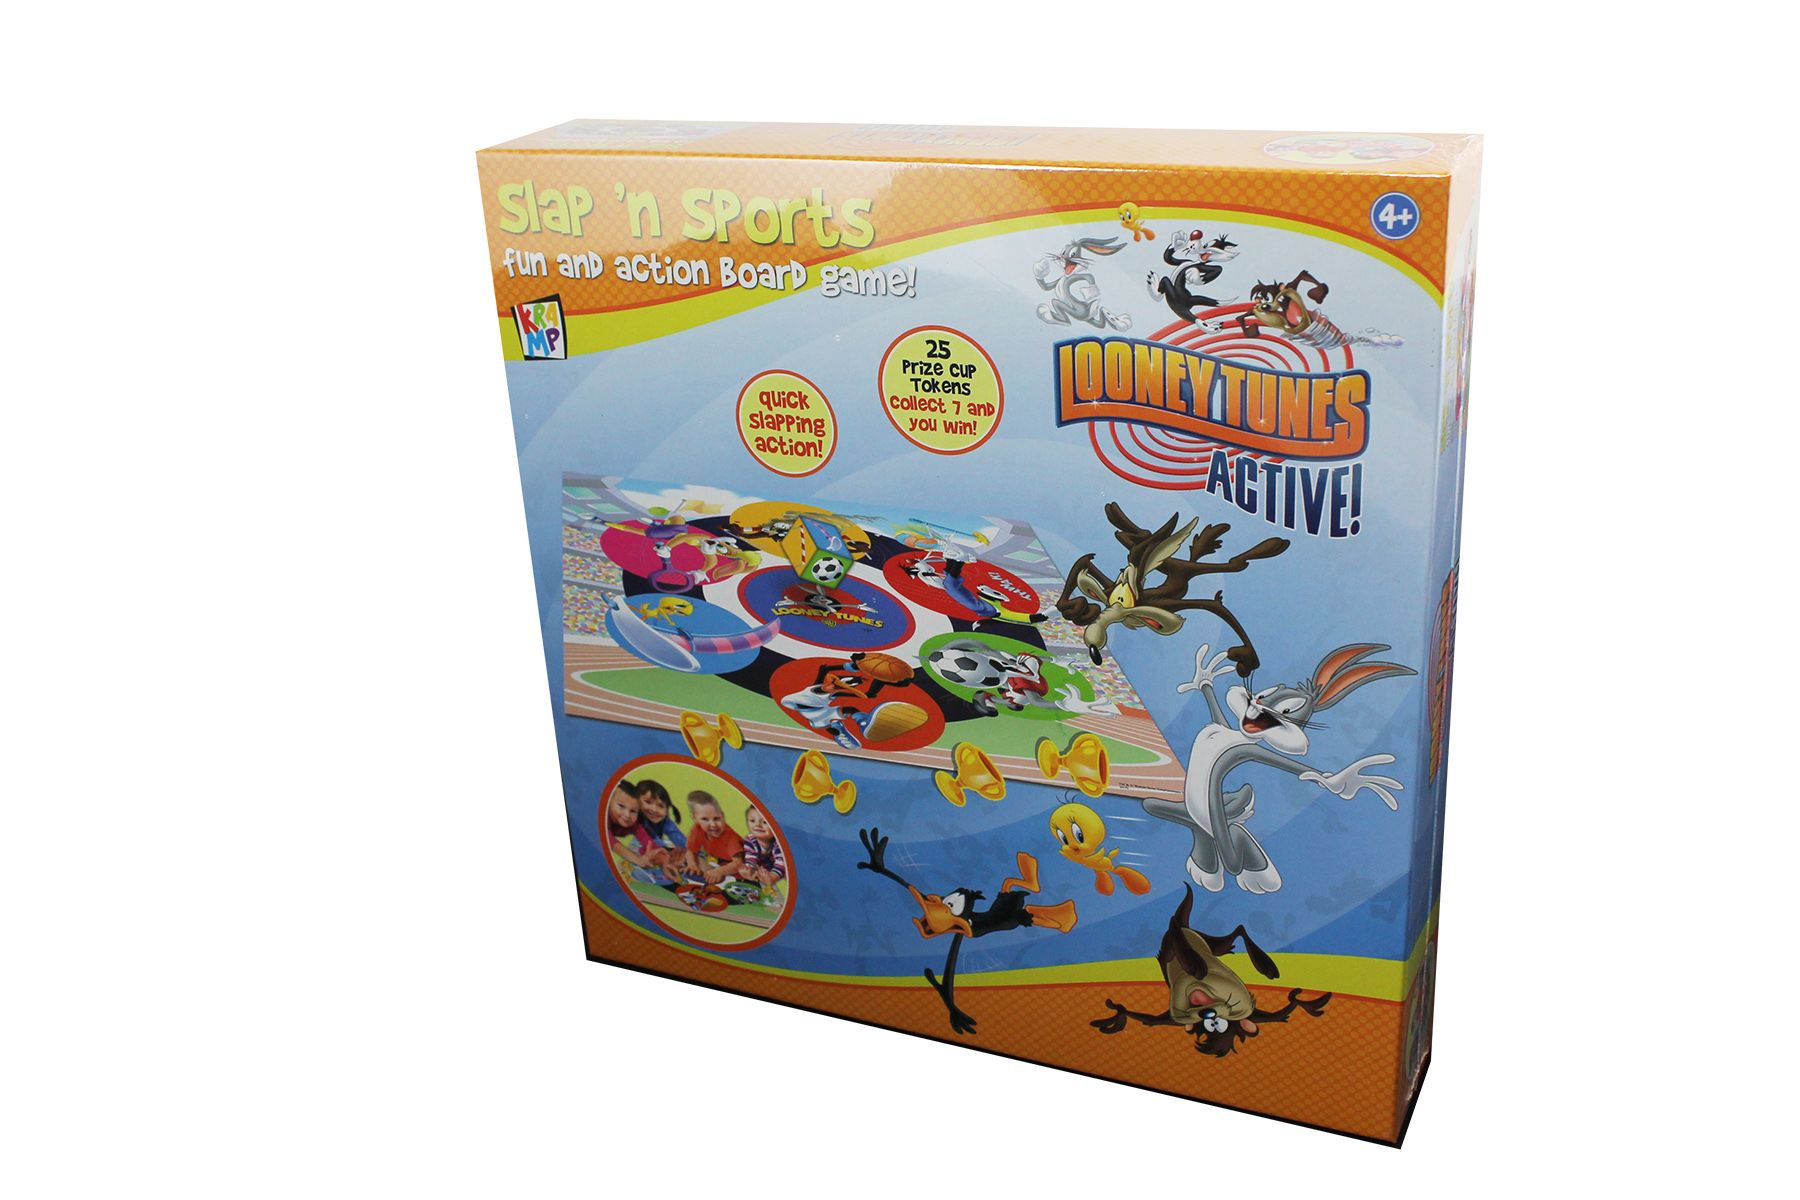 Looney Tunes toys and games fun and action board game Greece